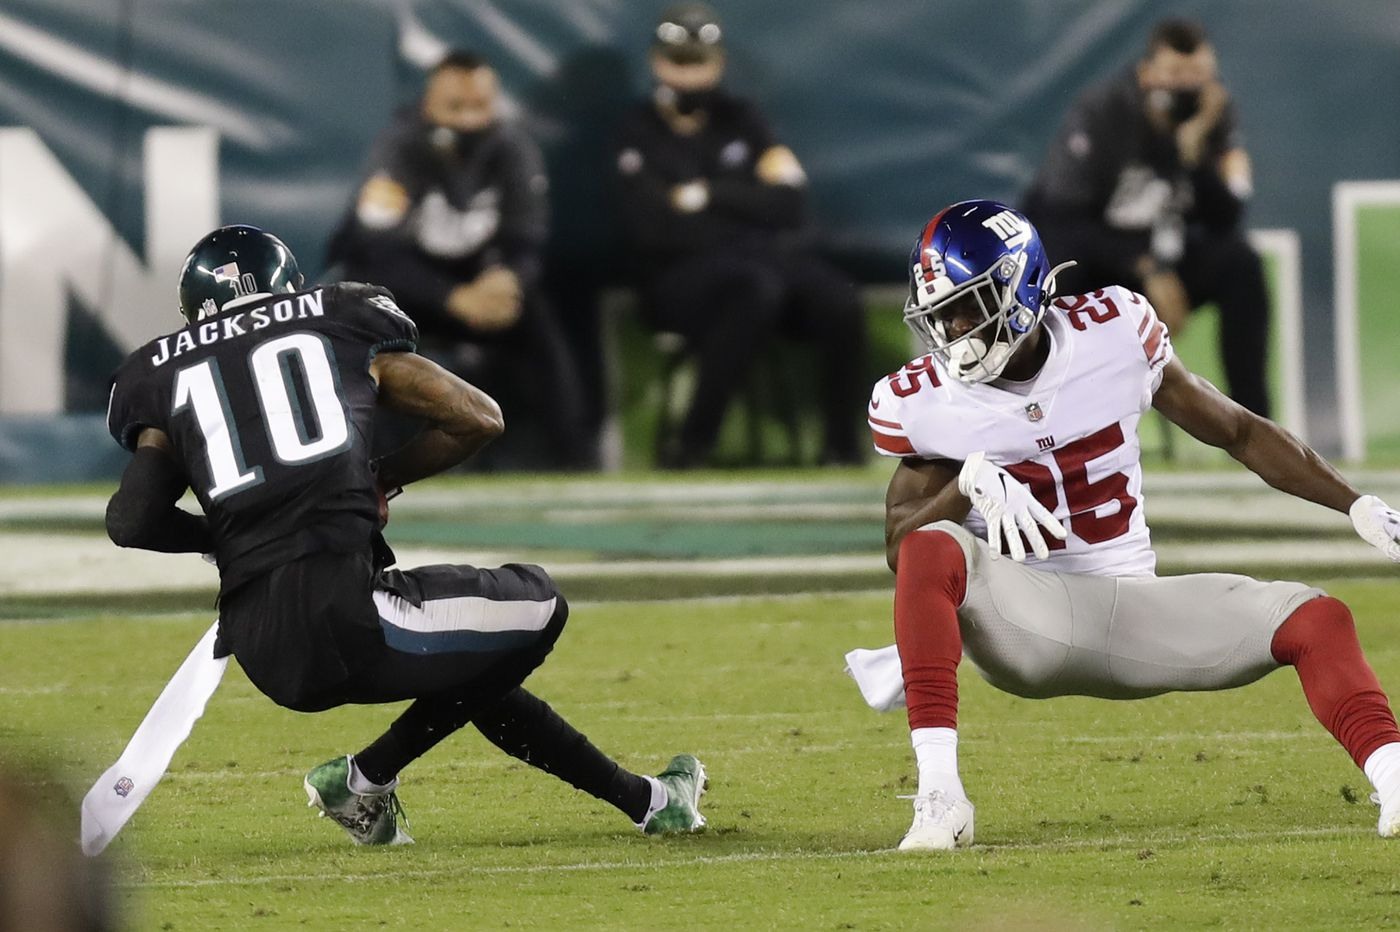 Eagles receiver DeSean Jackson volunteered to return final Giants punt, then took two awful hits for it